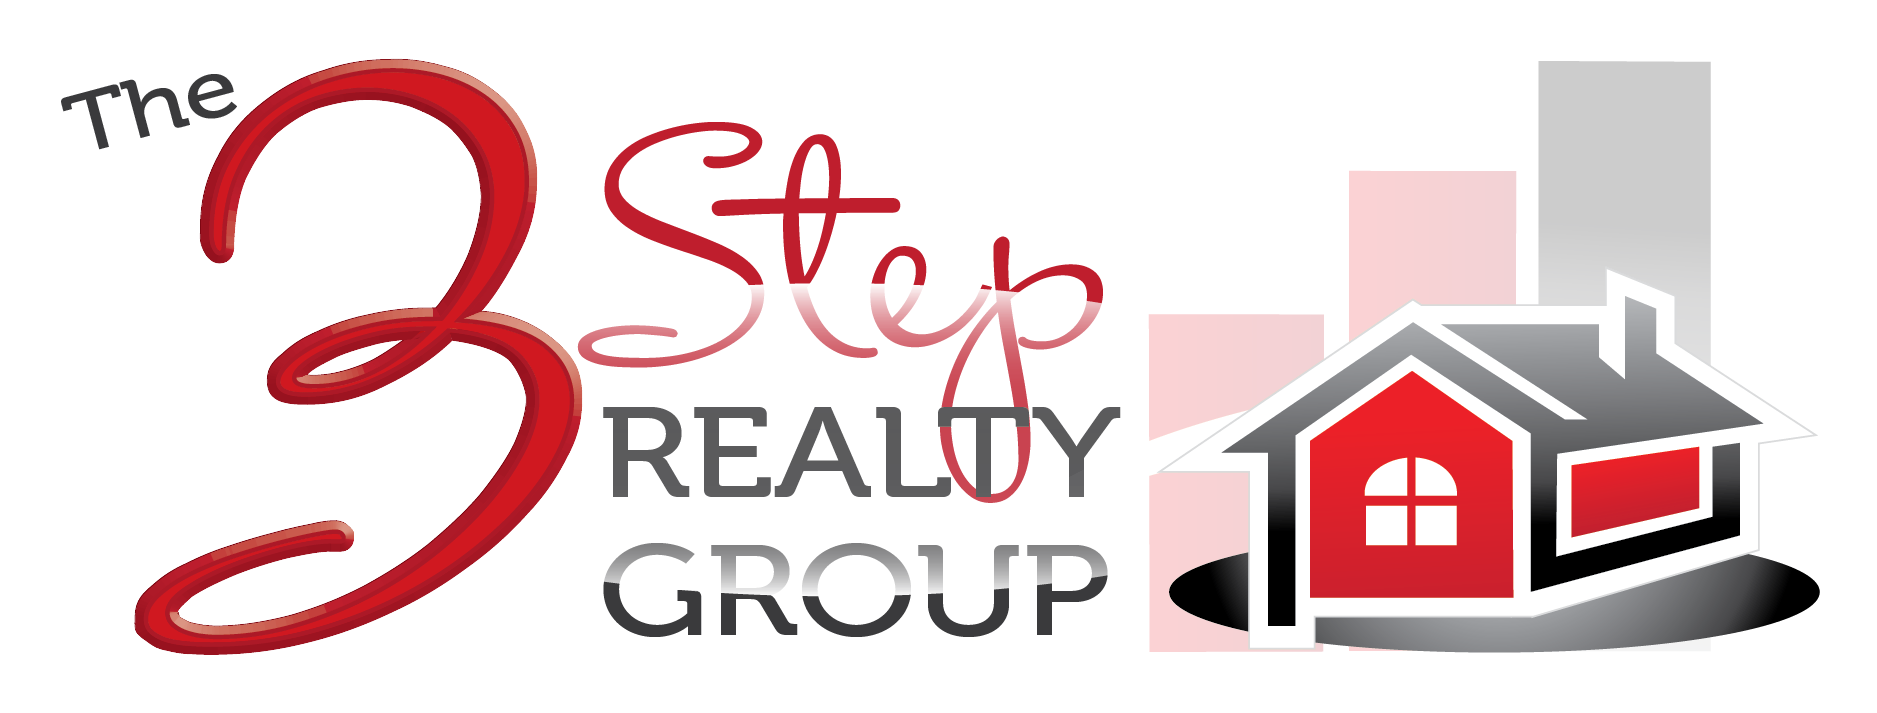 The 3 Step Realty Group logo